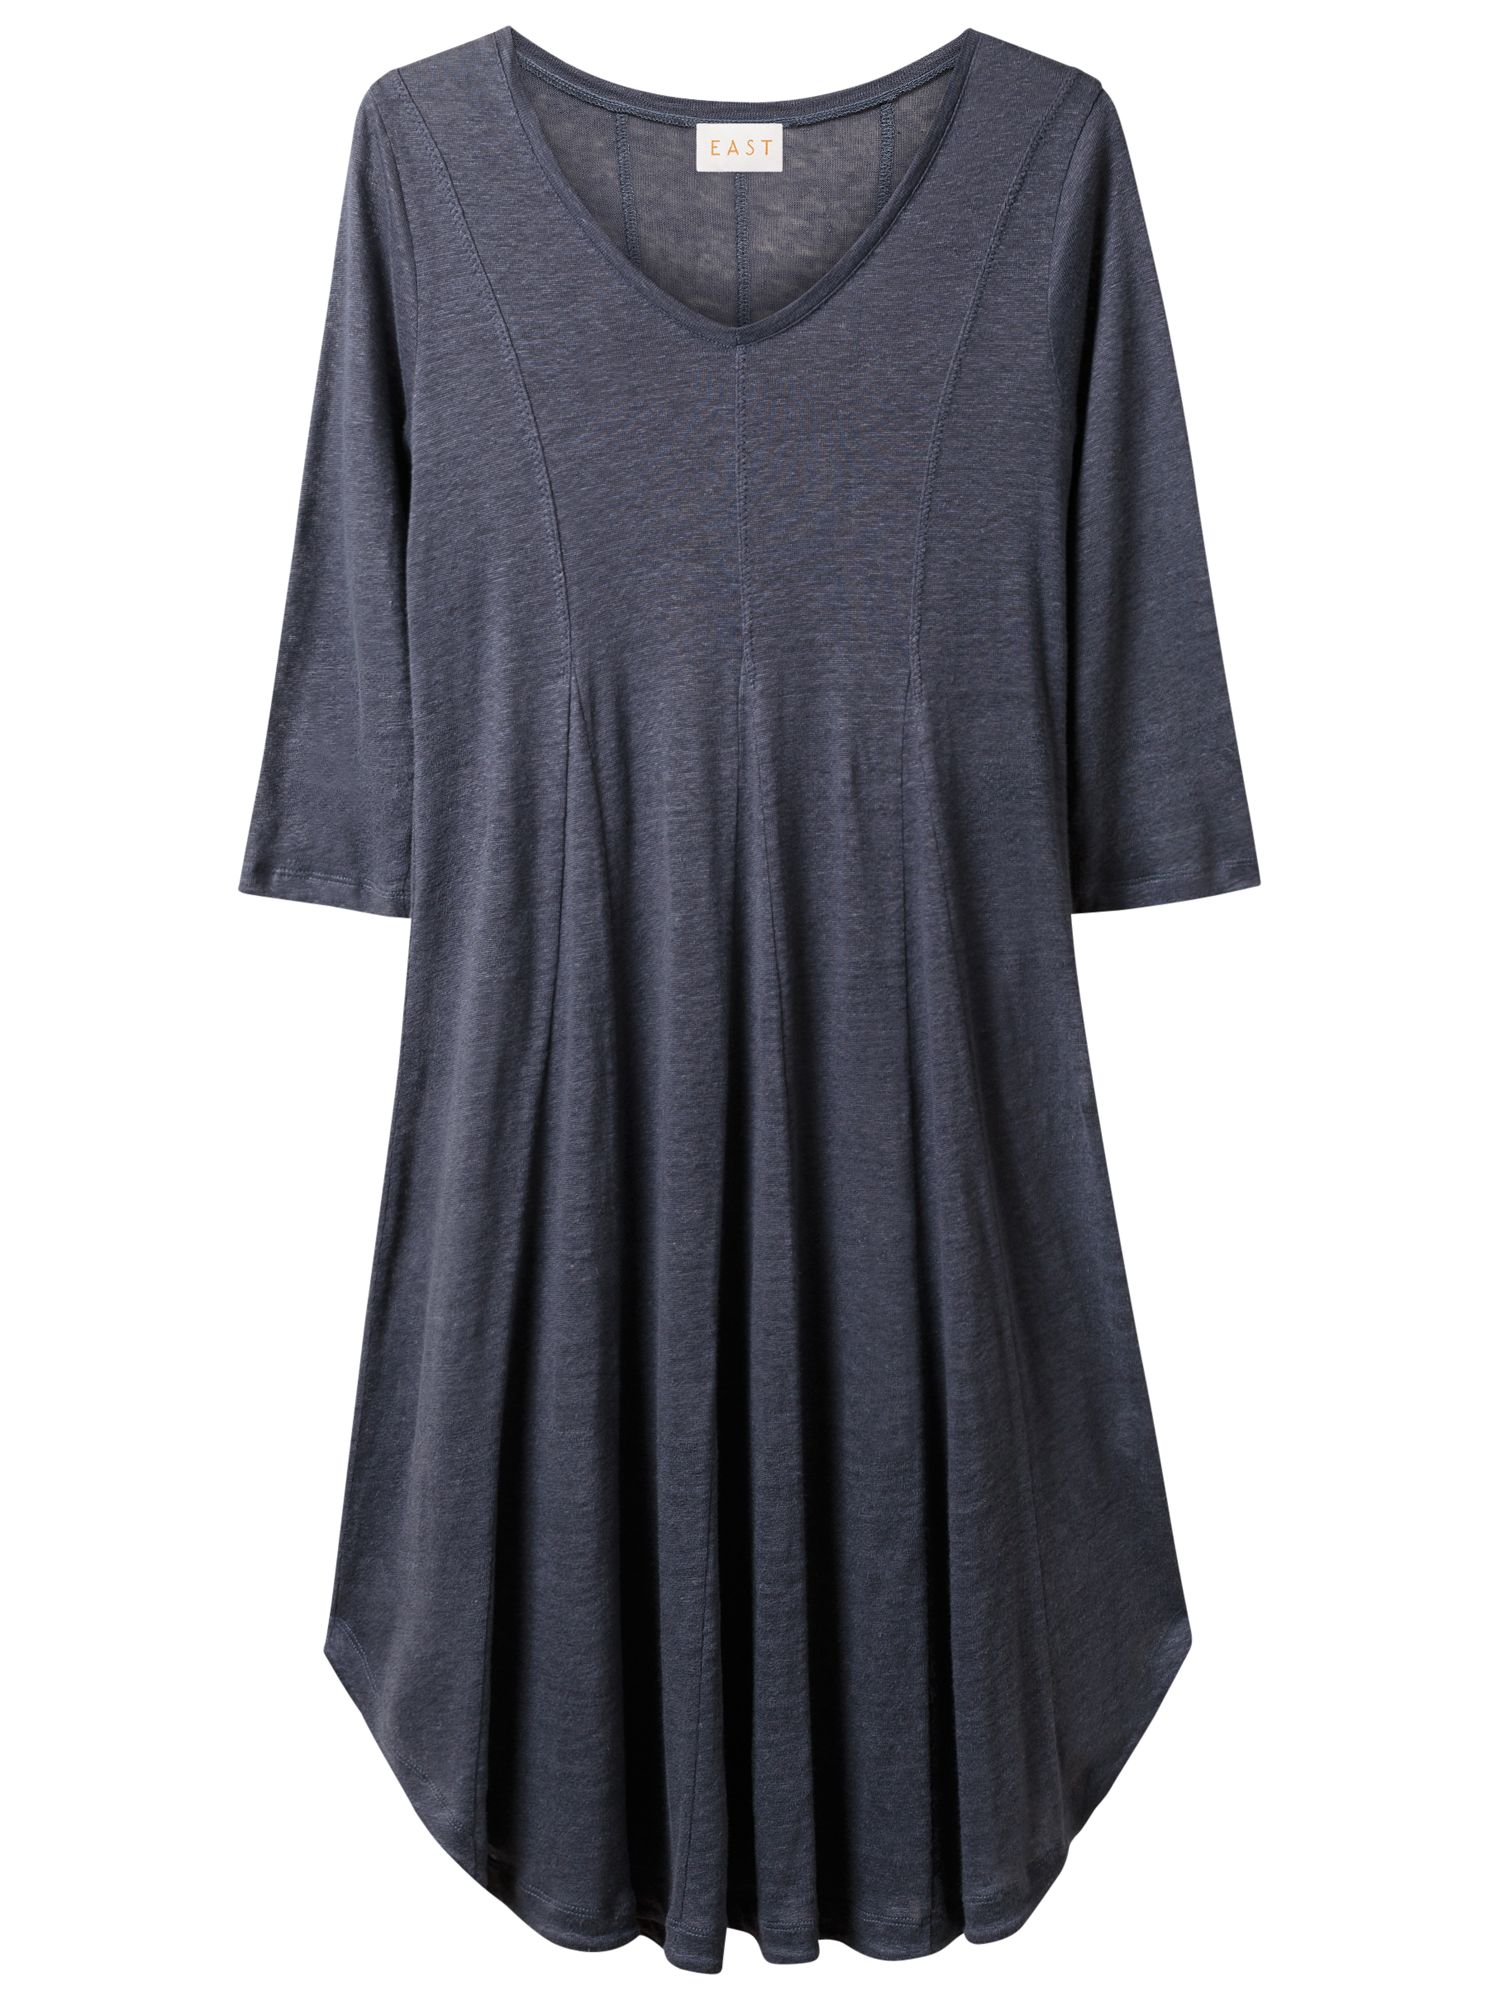 east godet jersey dress blue stone, east, godet, jersey, dress, blue, stone, xs|m|xl|l|s, women, womens dresses, 1845062